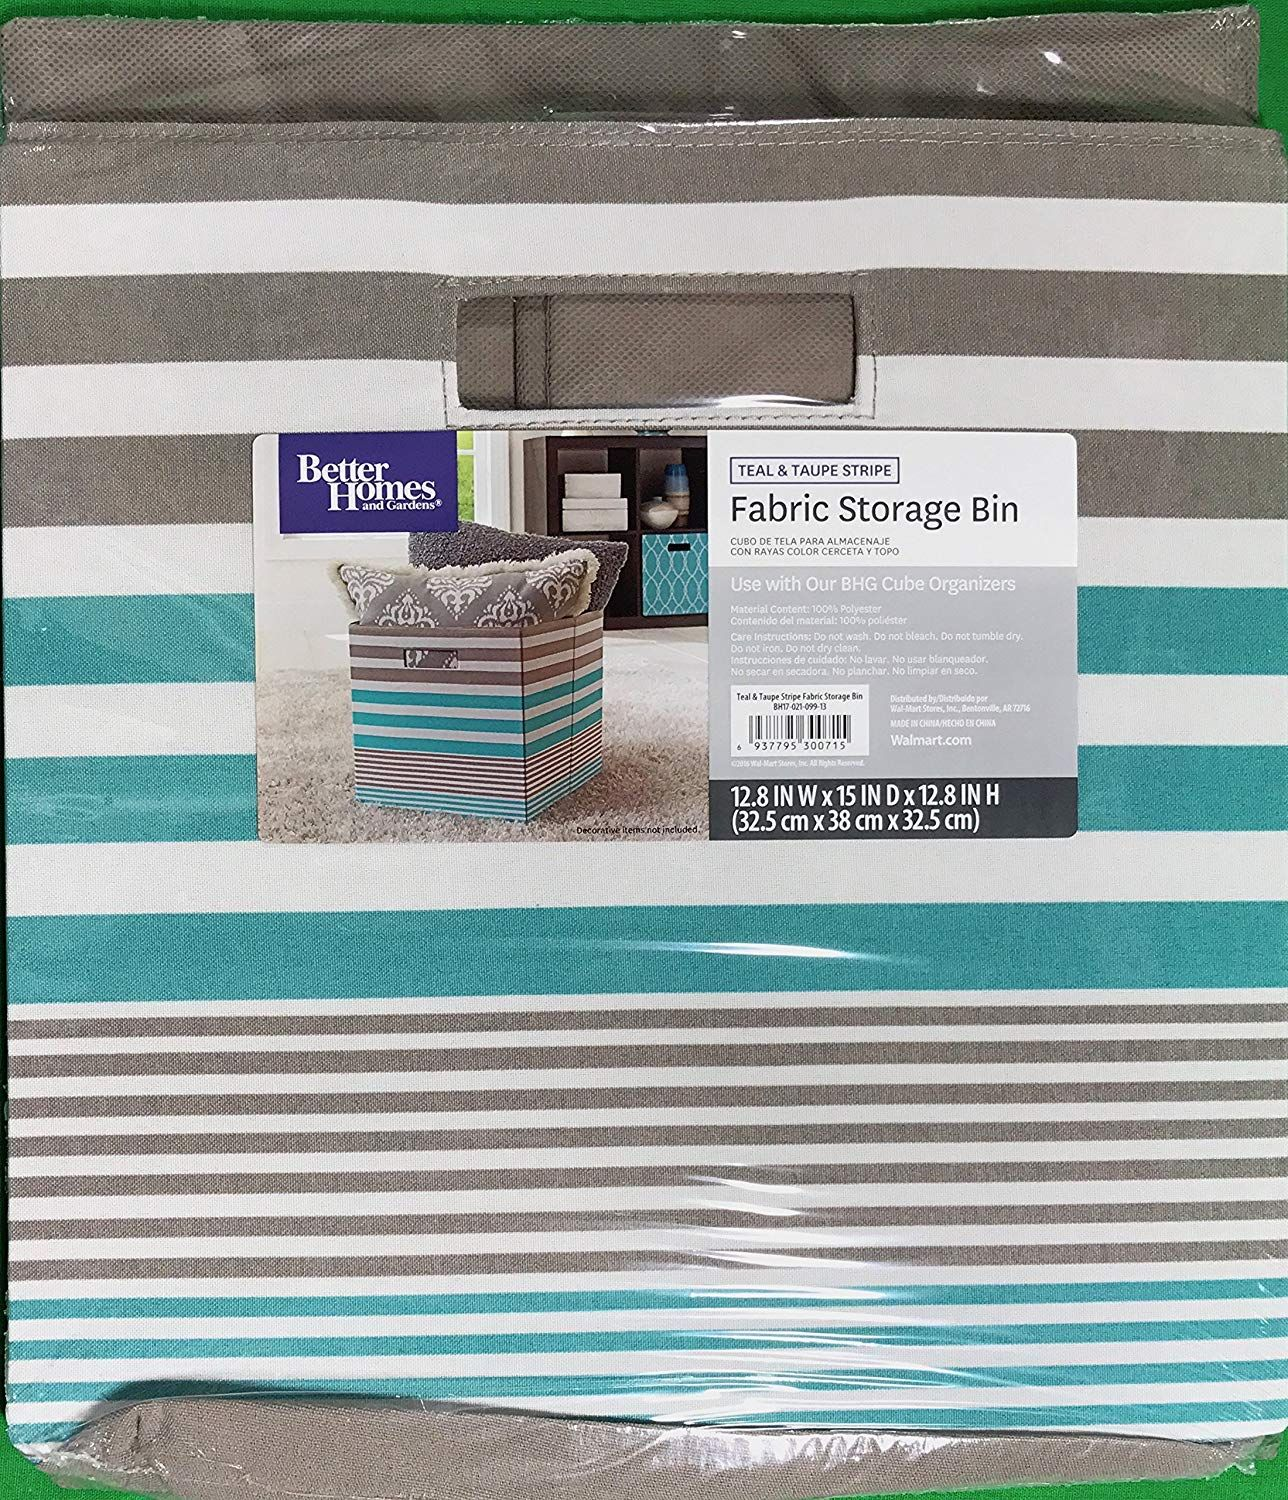 22eeb23afa0dcf824444d3bc0177302e - Better Homes And Gardens Collapsible Storage Cube